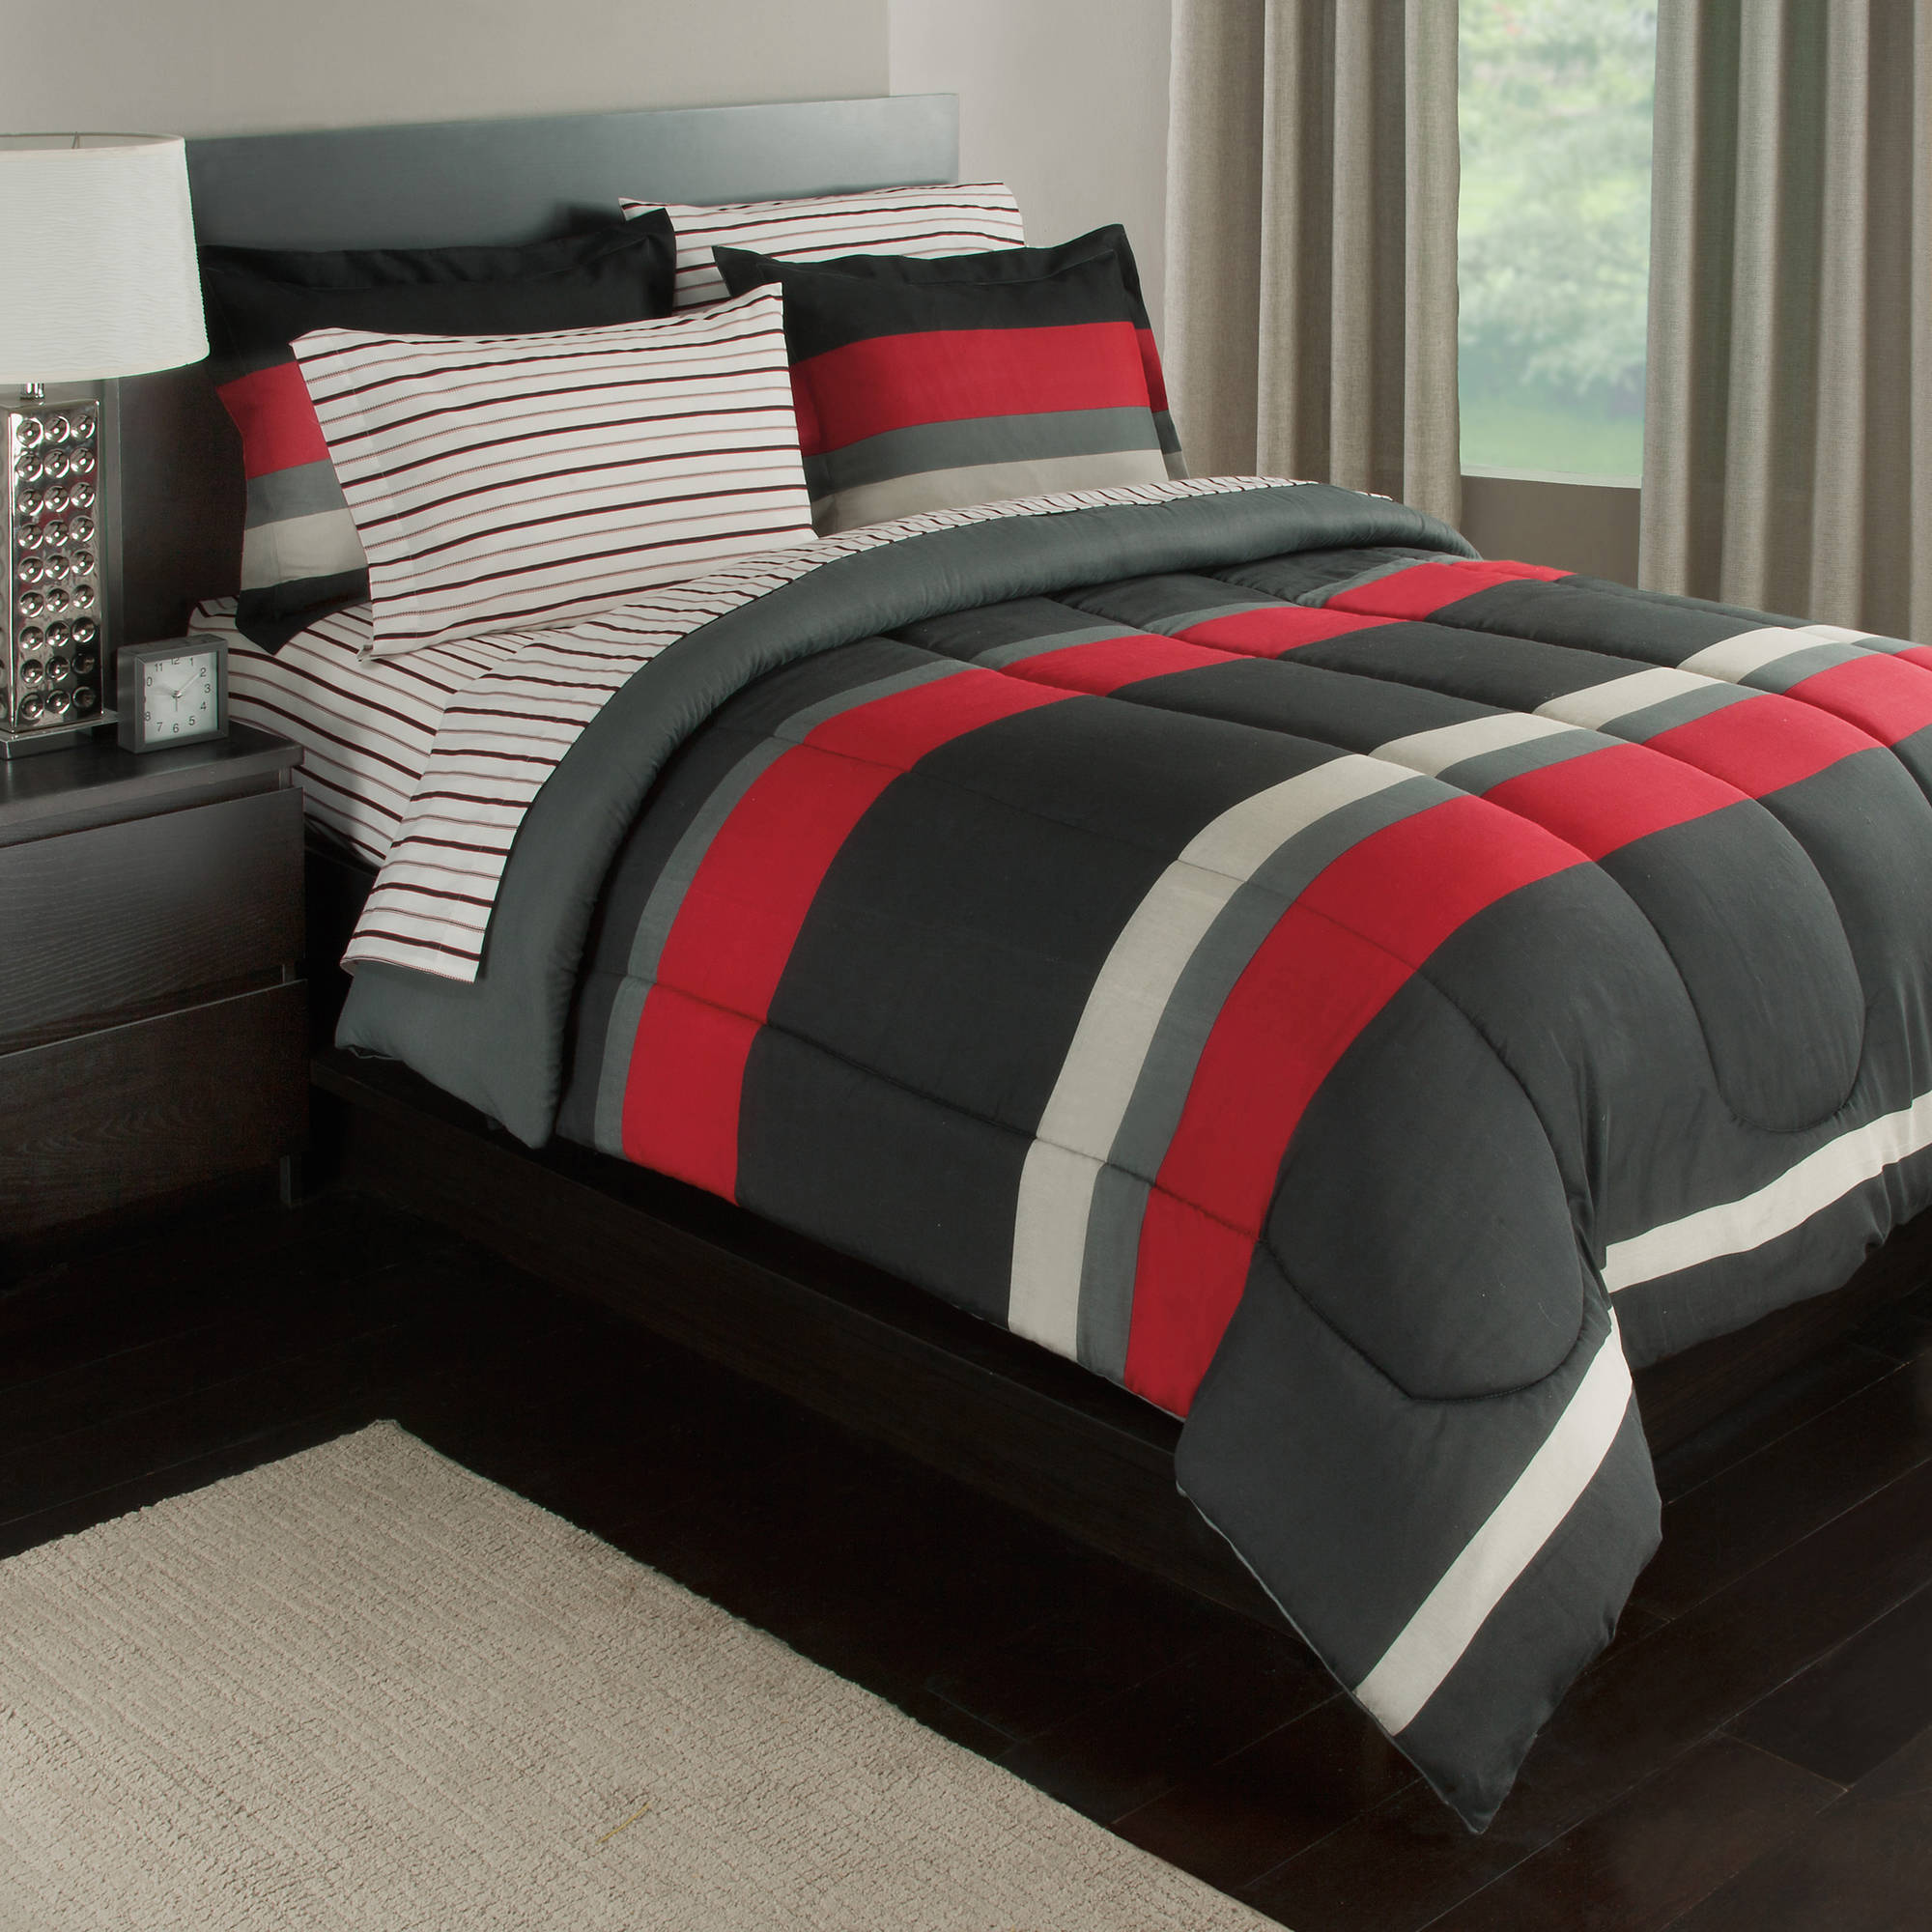 black gray red stripes boys teen full comforter set 7 piece bed in a bag walmart com